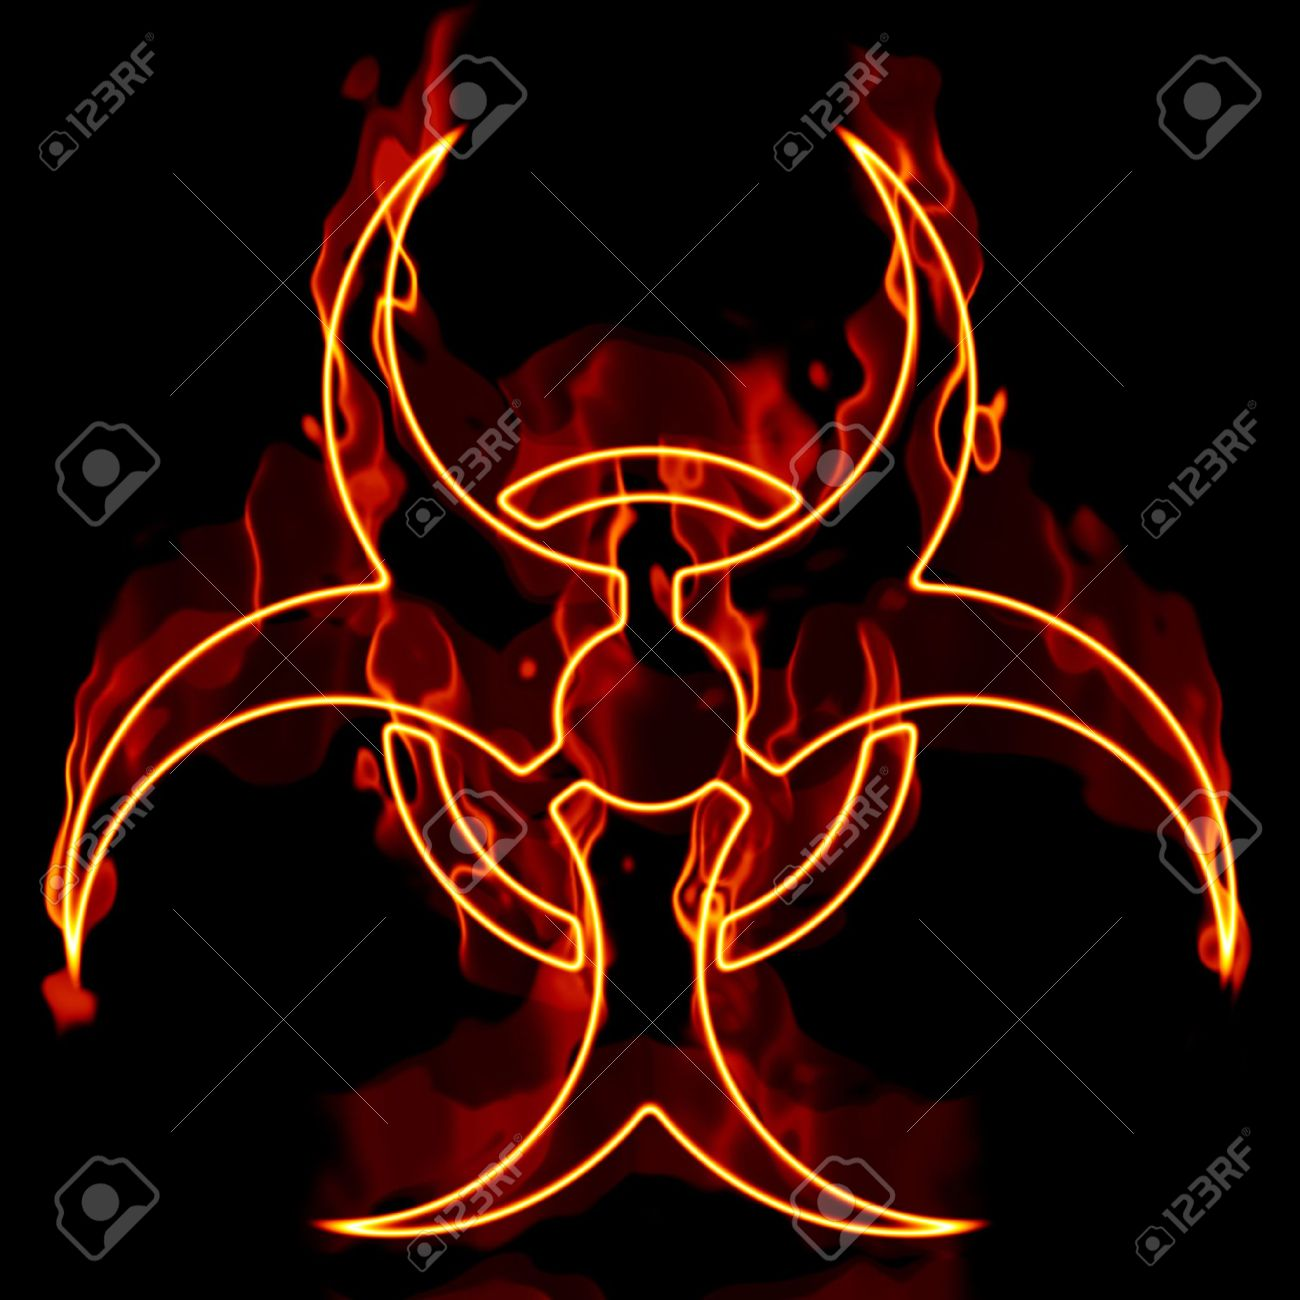 A biohazard symbol in flames isolated over a black background a biohazard symbol in flames isolated over a black background stock photo 4877384 biocorpaavc Image collections